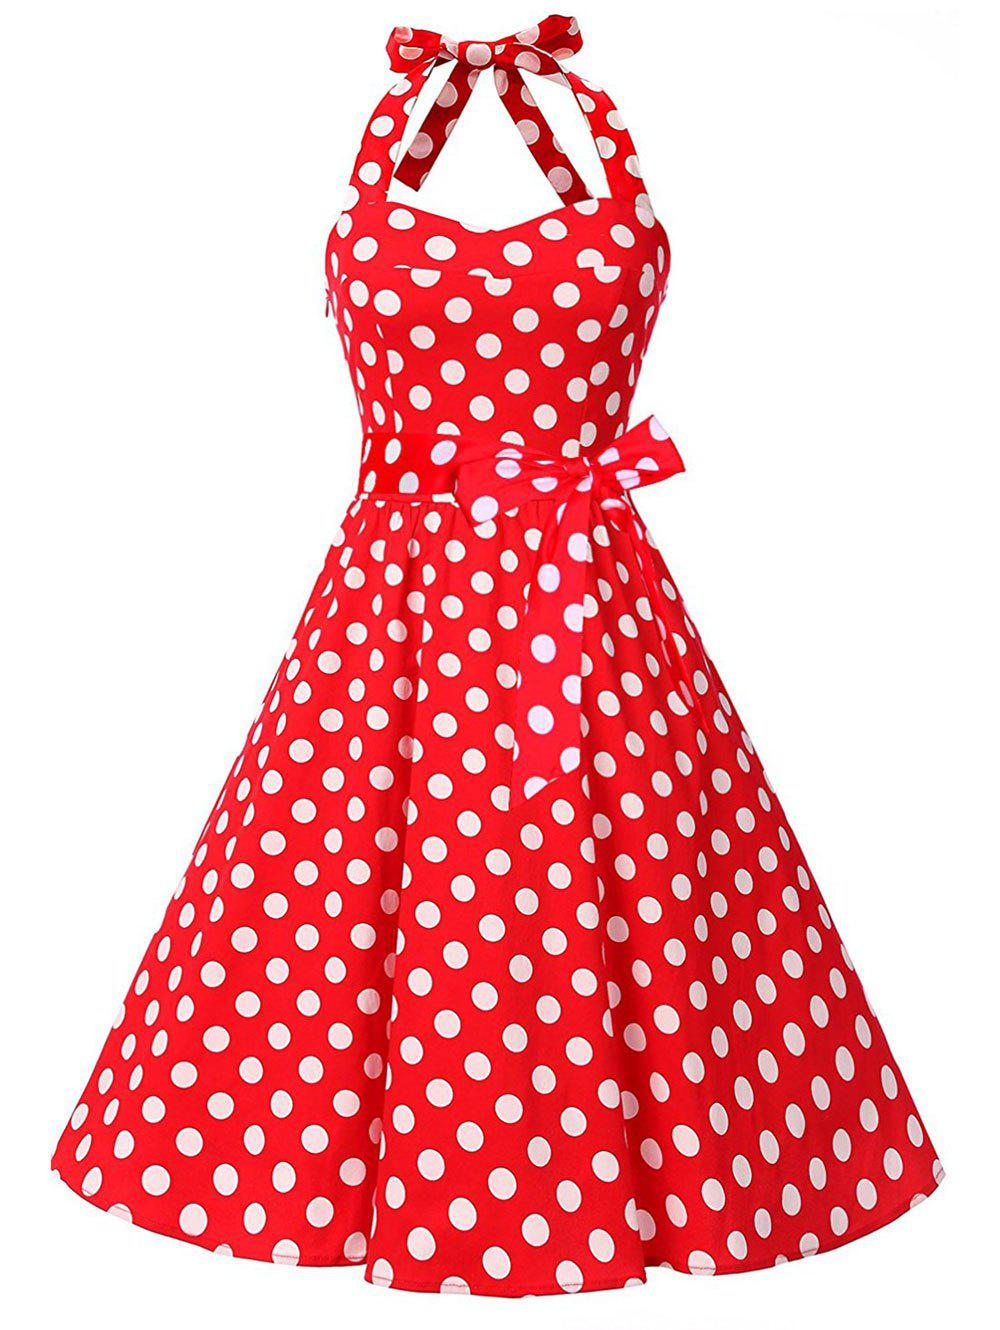 Vintage Polka Dot Backless Halter Pin Up DressWOMEN<br><br>Size: S; Color: RED; Style: Vintage; Material: Cotton,Polyester; Silhouette: A-Line; Dresses Length: Knee-Length; Neckline: Halter; Sleeve Length: Sleeveless; Embellishment: Backless; Pattern Type: Polka Dot; With Belt: Yes; Season: Fall,Spring; Weight: 0.4000kg; Package Contents: 1 x Dress    1 x Belt;